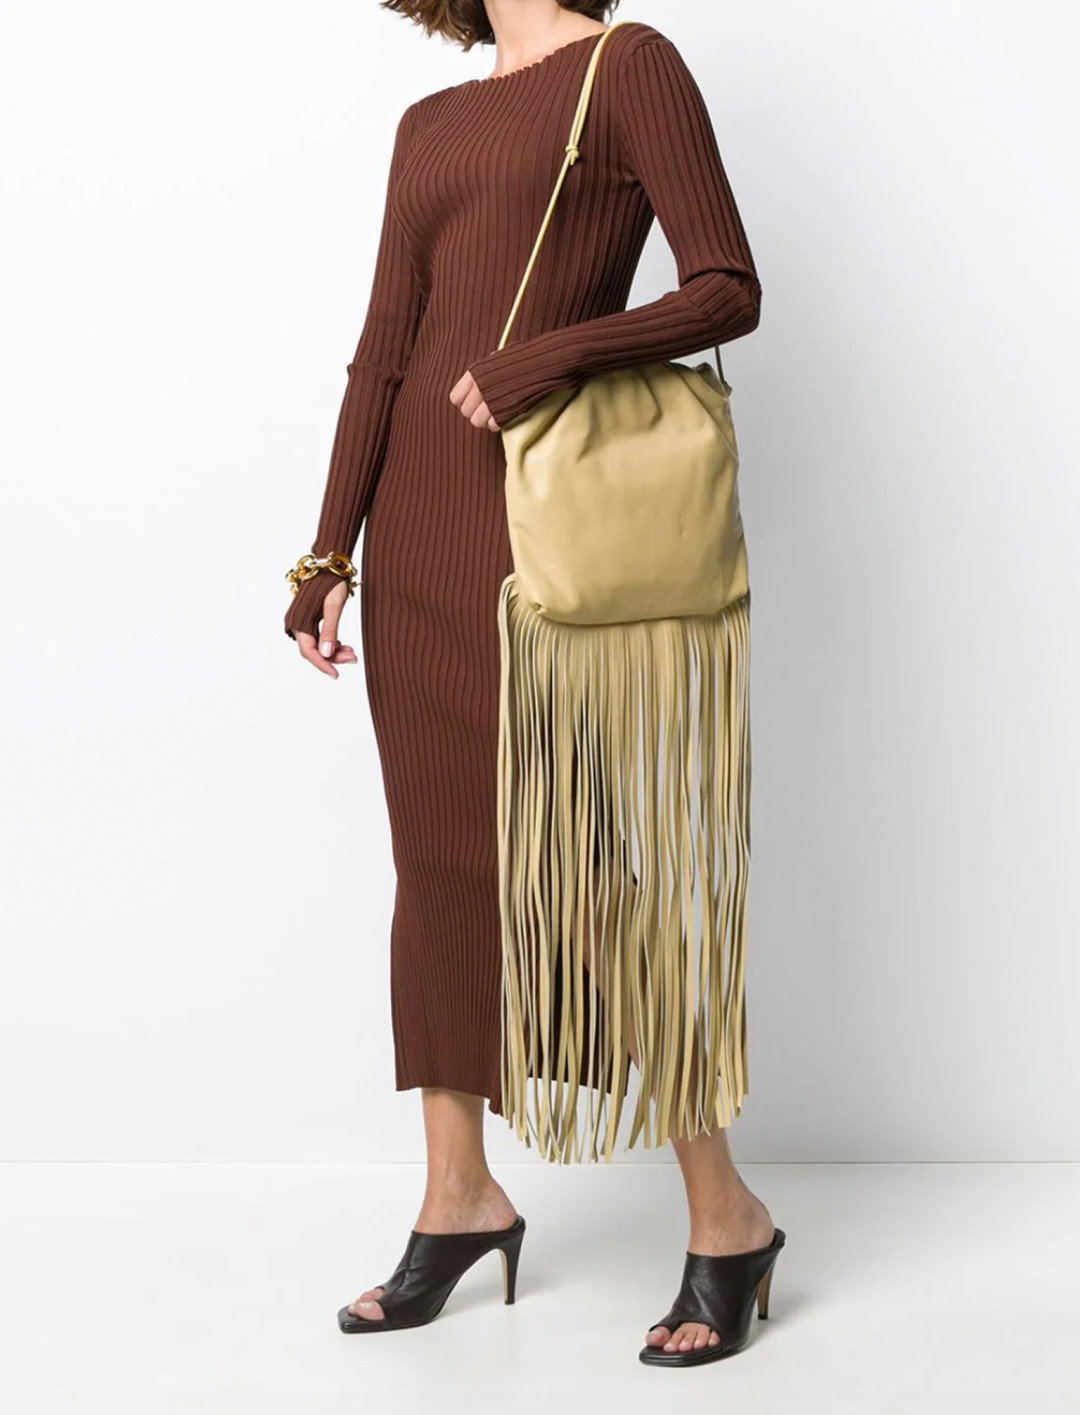 The Fringe Pouch Shoulder Bag